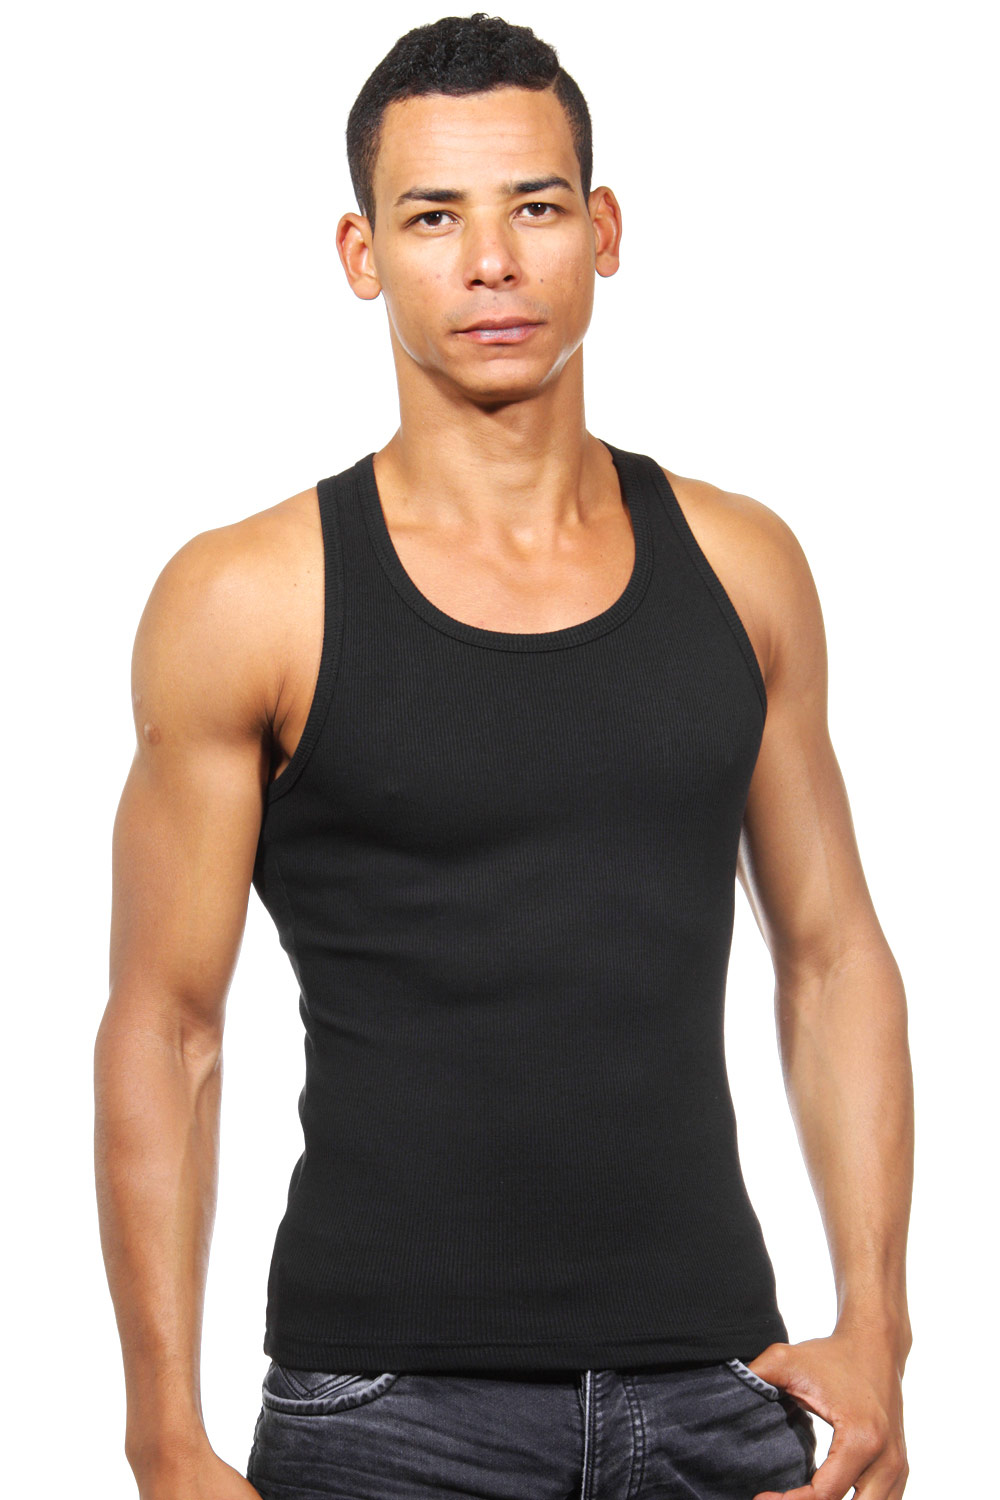 DARKZONE ribbed tank top slim fit at oboy.com